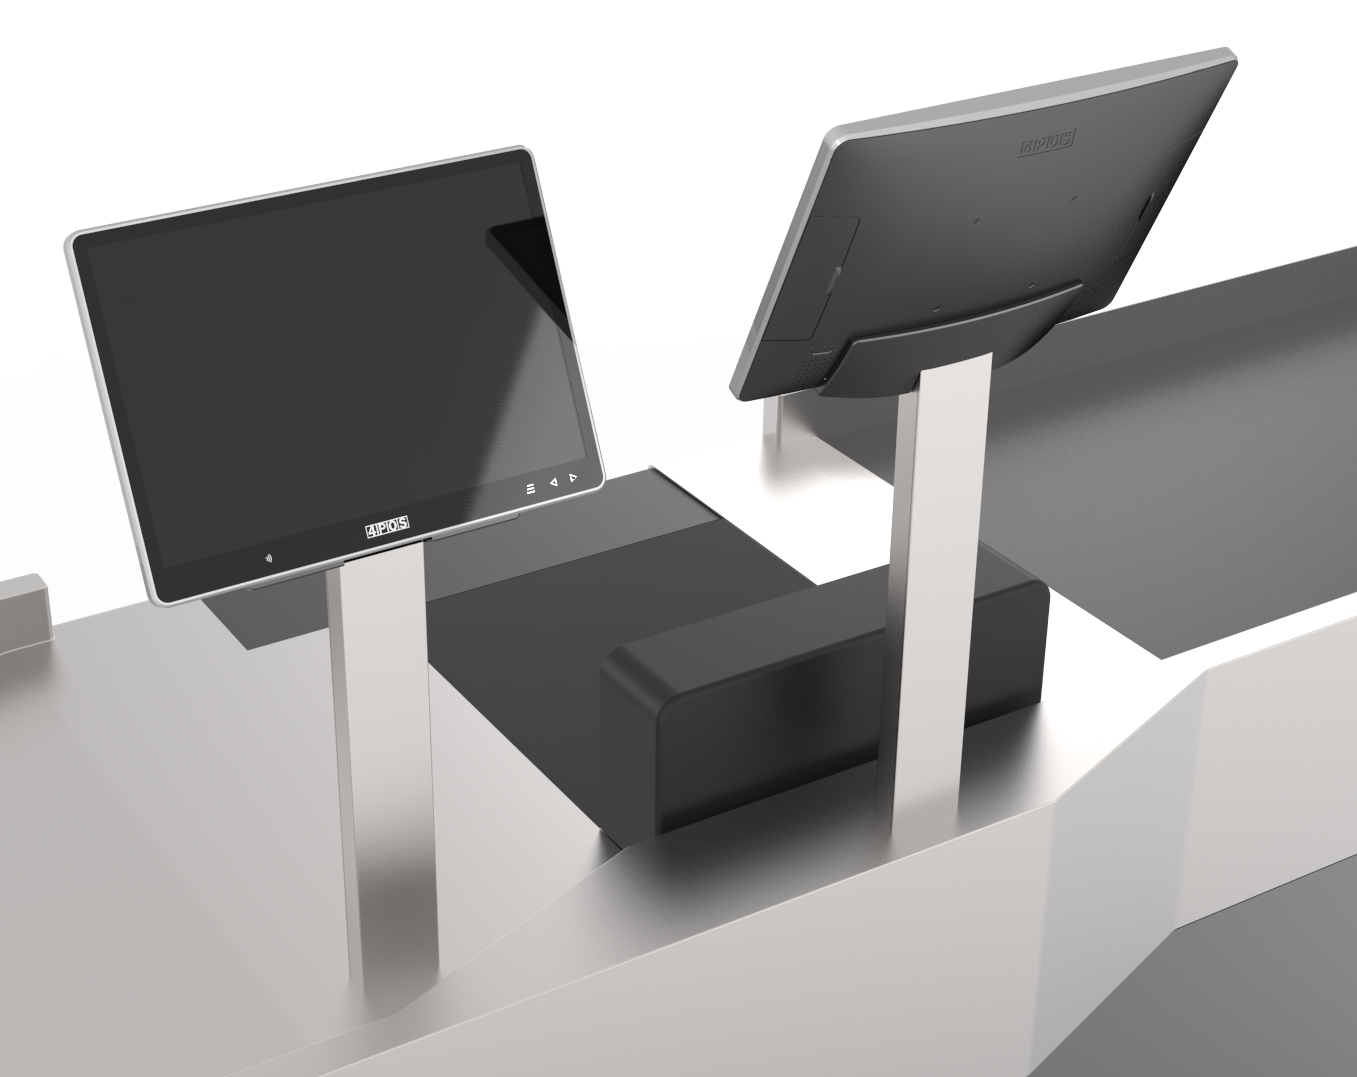 4POS – Touchscreens, monitors and displays for the point of sale